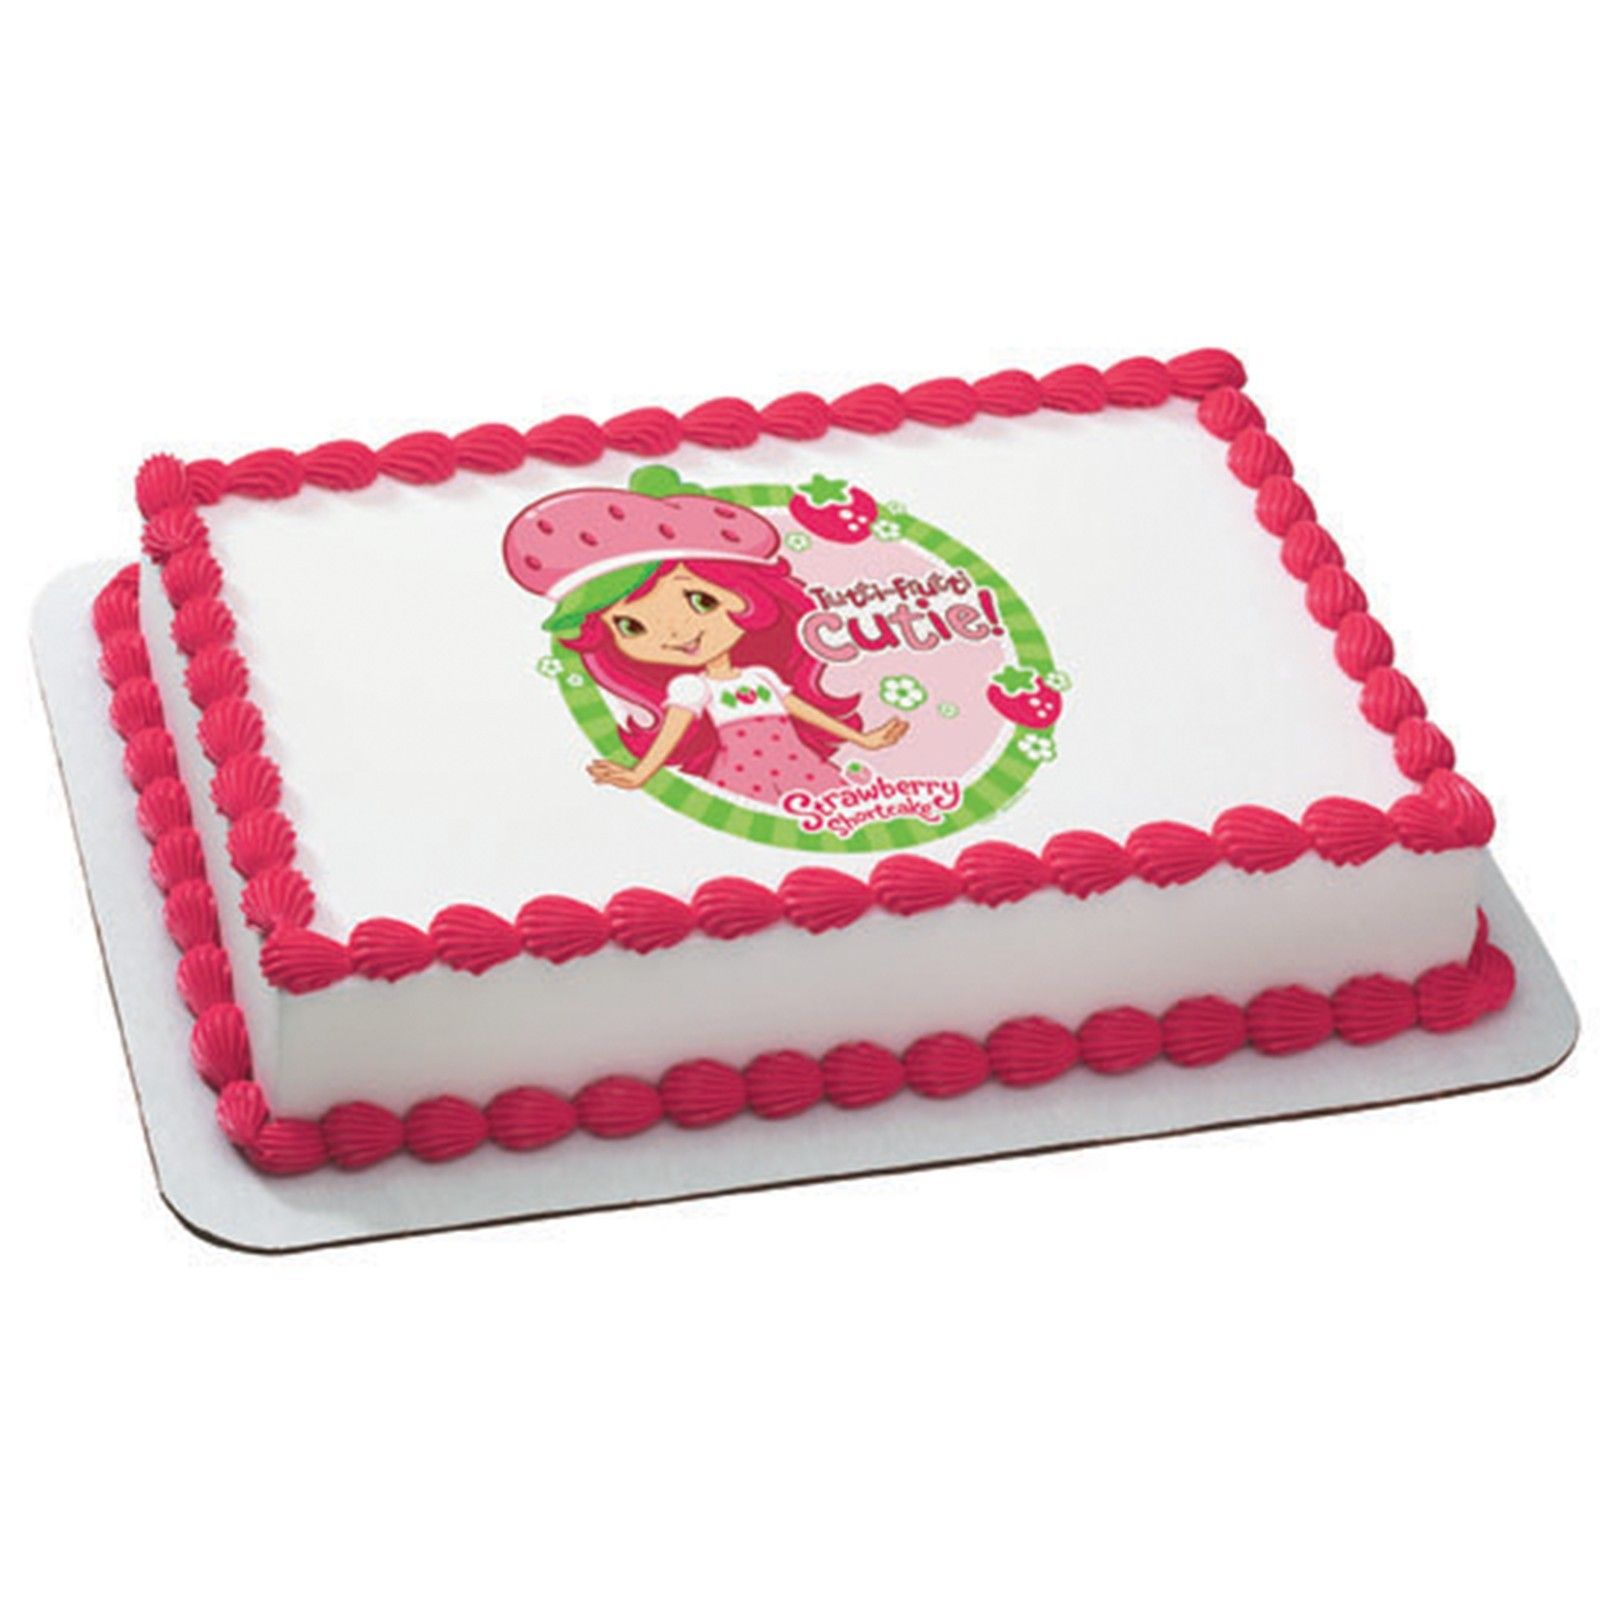 Marvelous Strawberry Shortcake Tutti Fruitti Cutie Edible Image Cake Topper Funny Birthday Cards Online Elaedamsfinfo